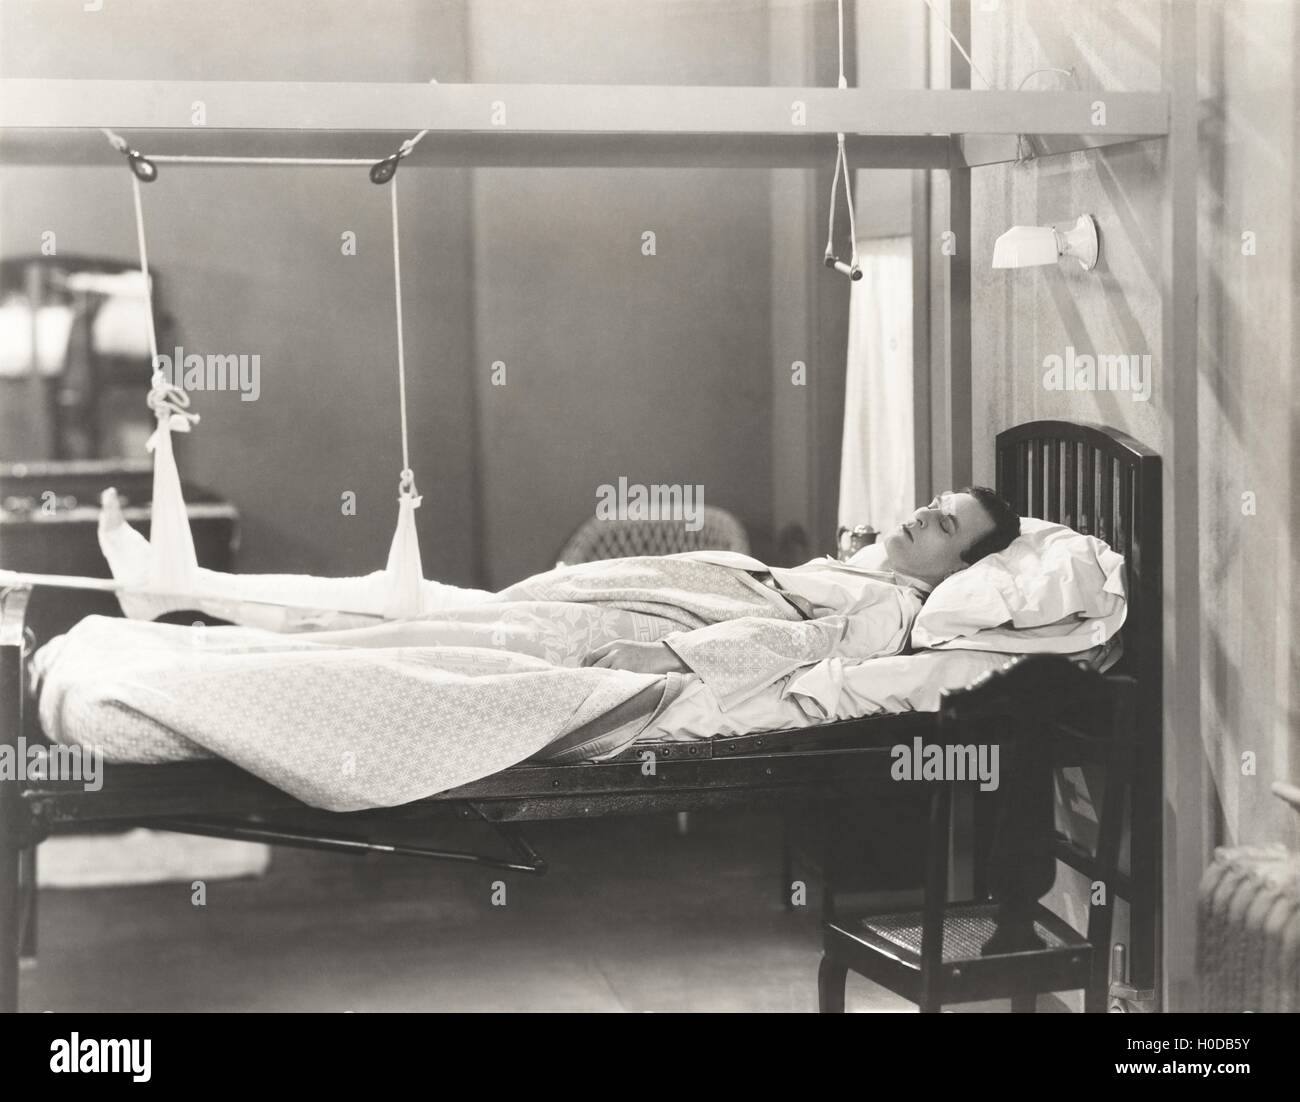 Man with fractured leg sleeping on hospital bed - Stock Image